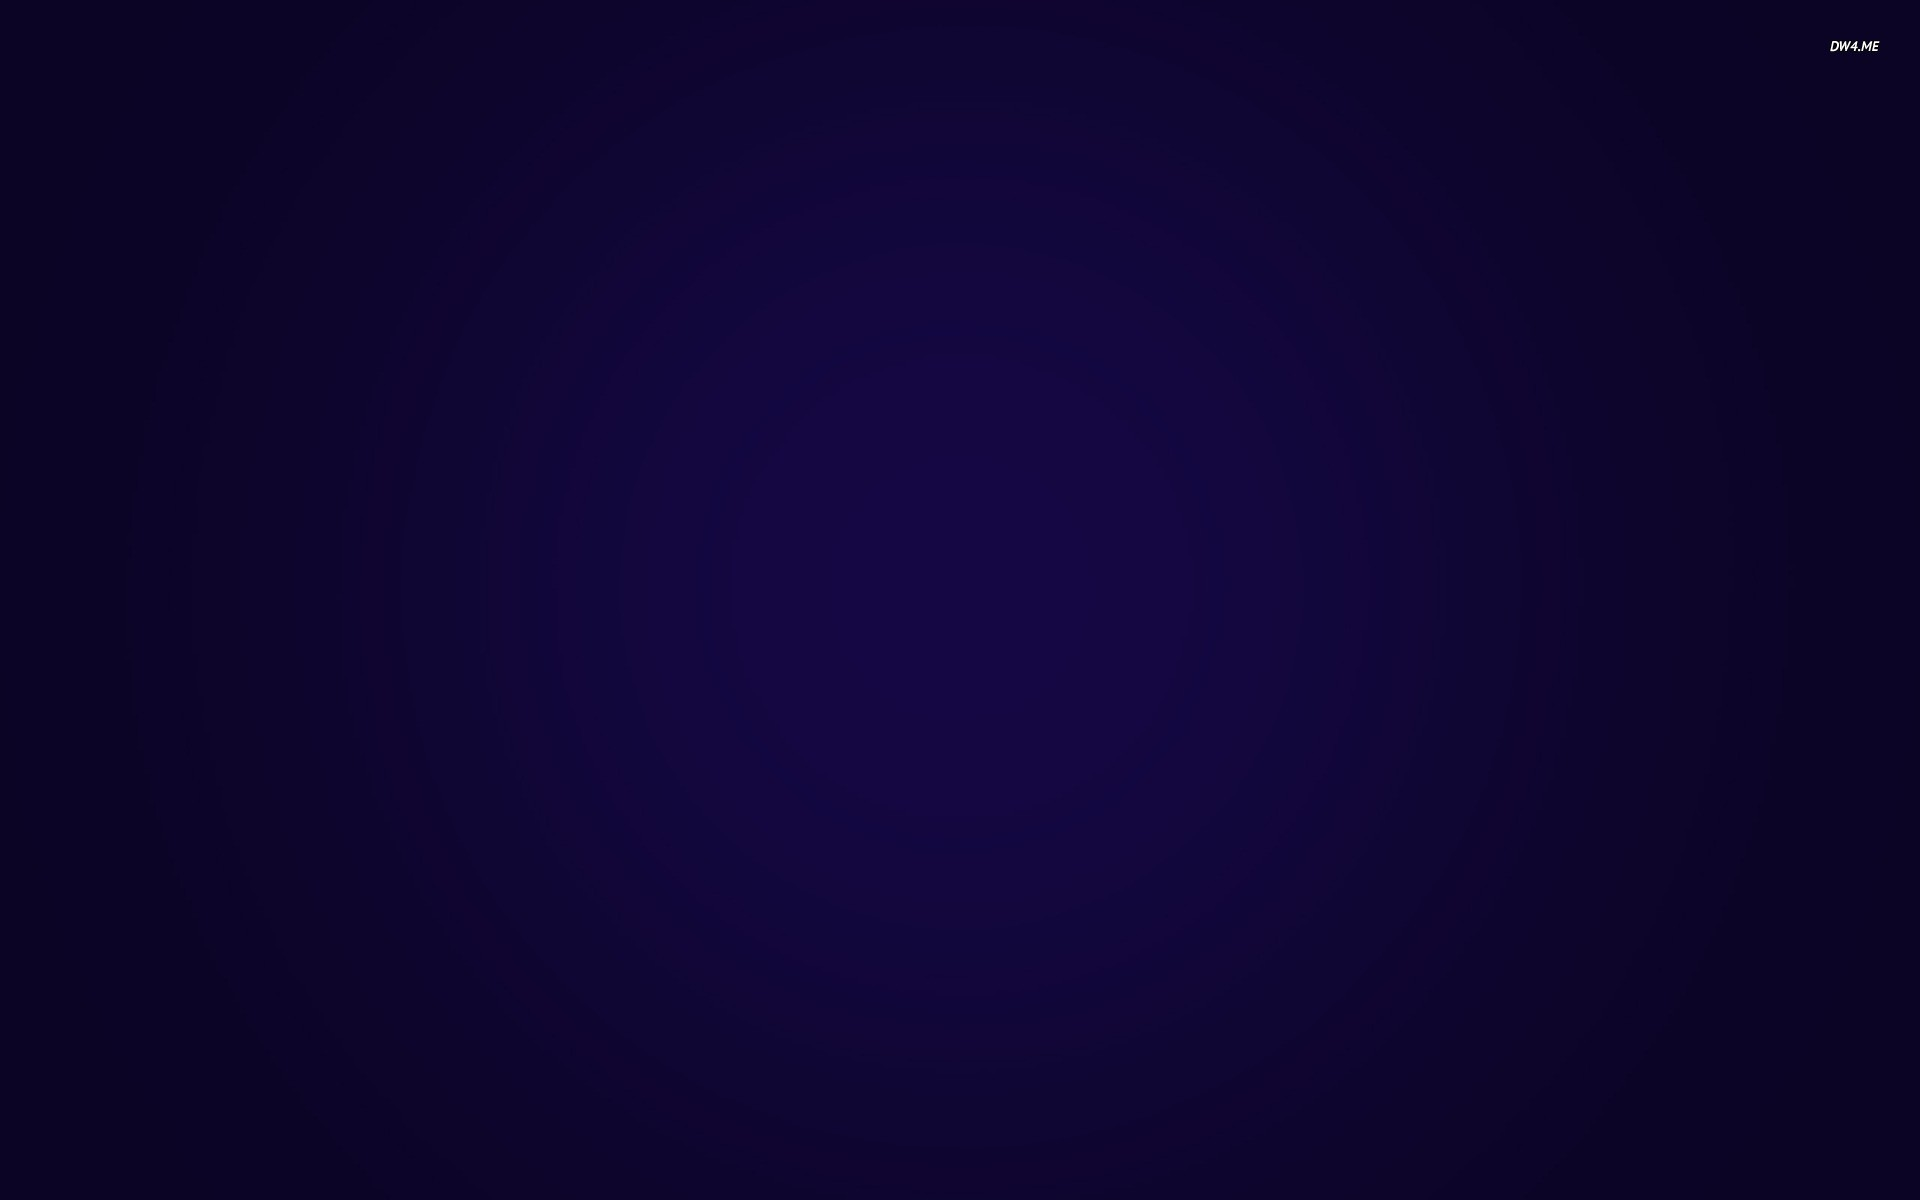 Dark Blue Background Images Wallpapertag: Blue And Black Background ·① Download Free High Resolution